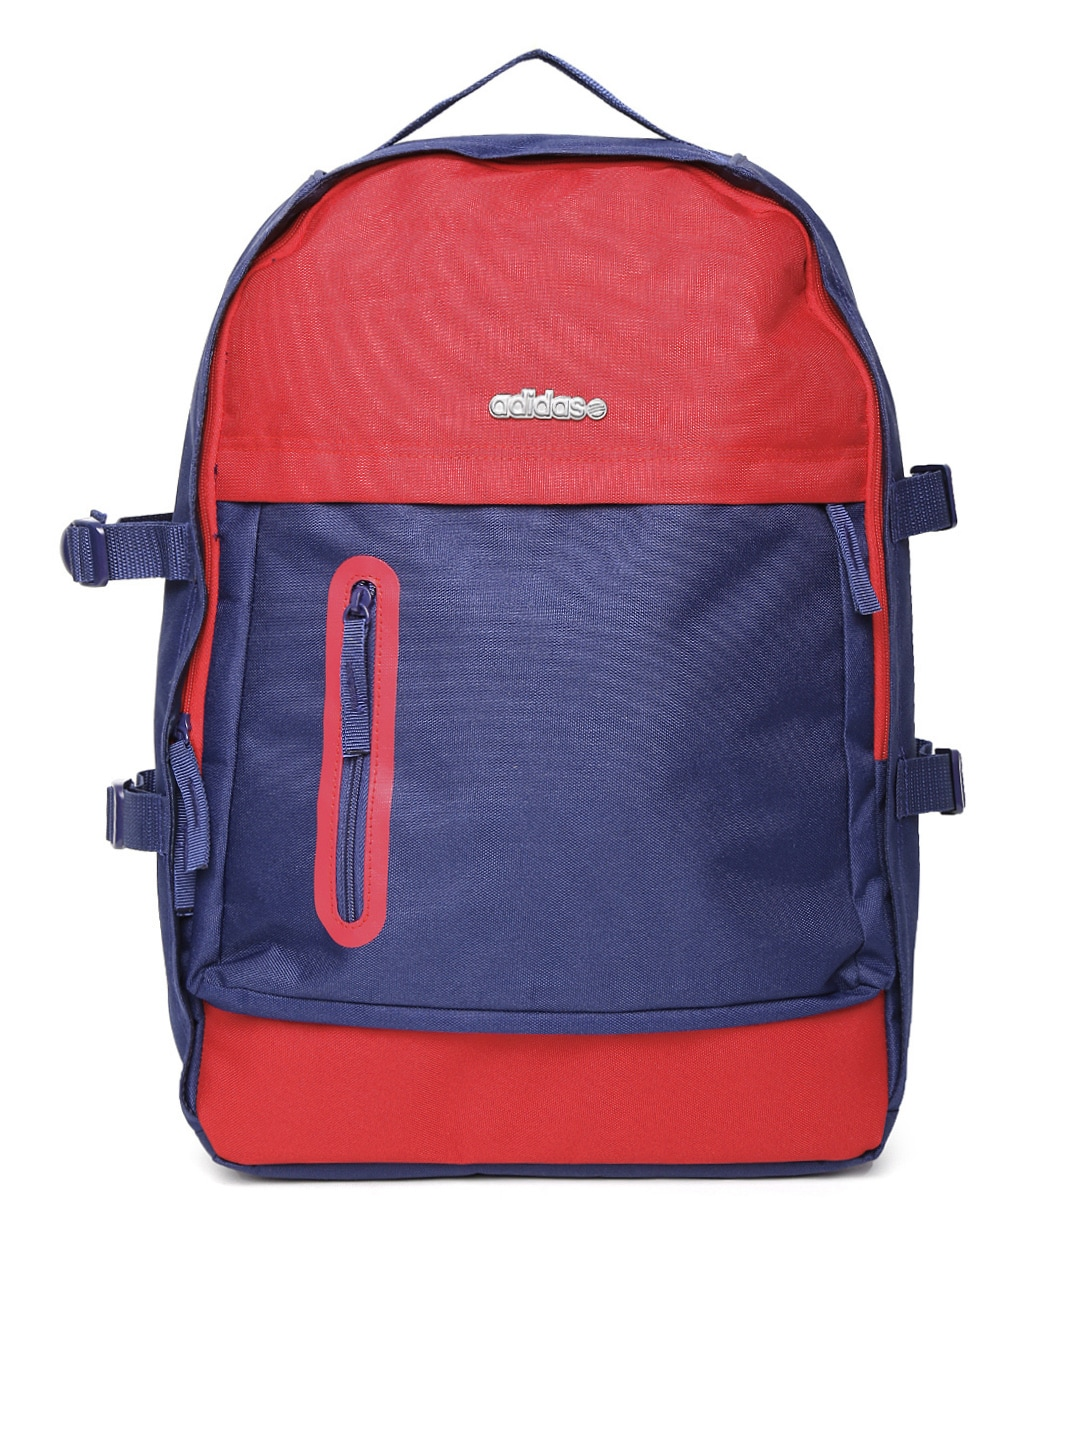 da64560f7a Adidas Blue Bags Backpacks - Buy Adidas Blue Bags Backpacks online in India